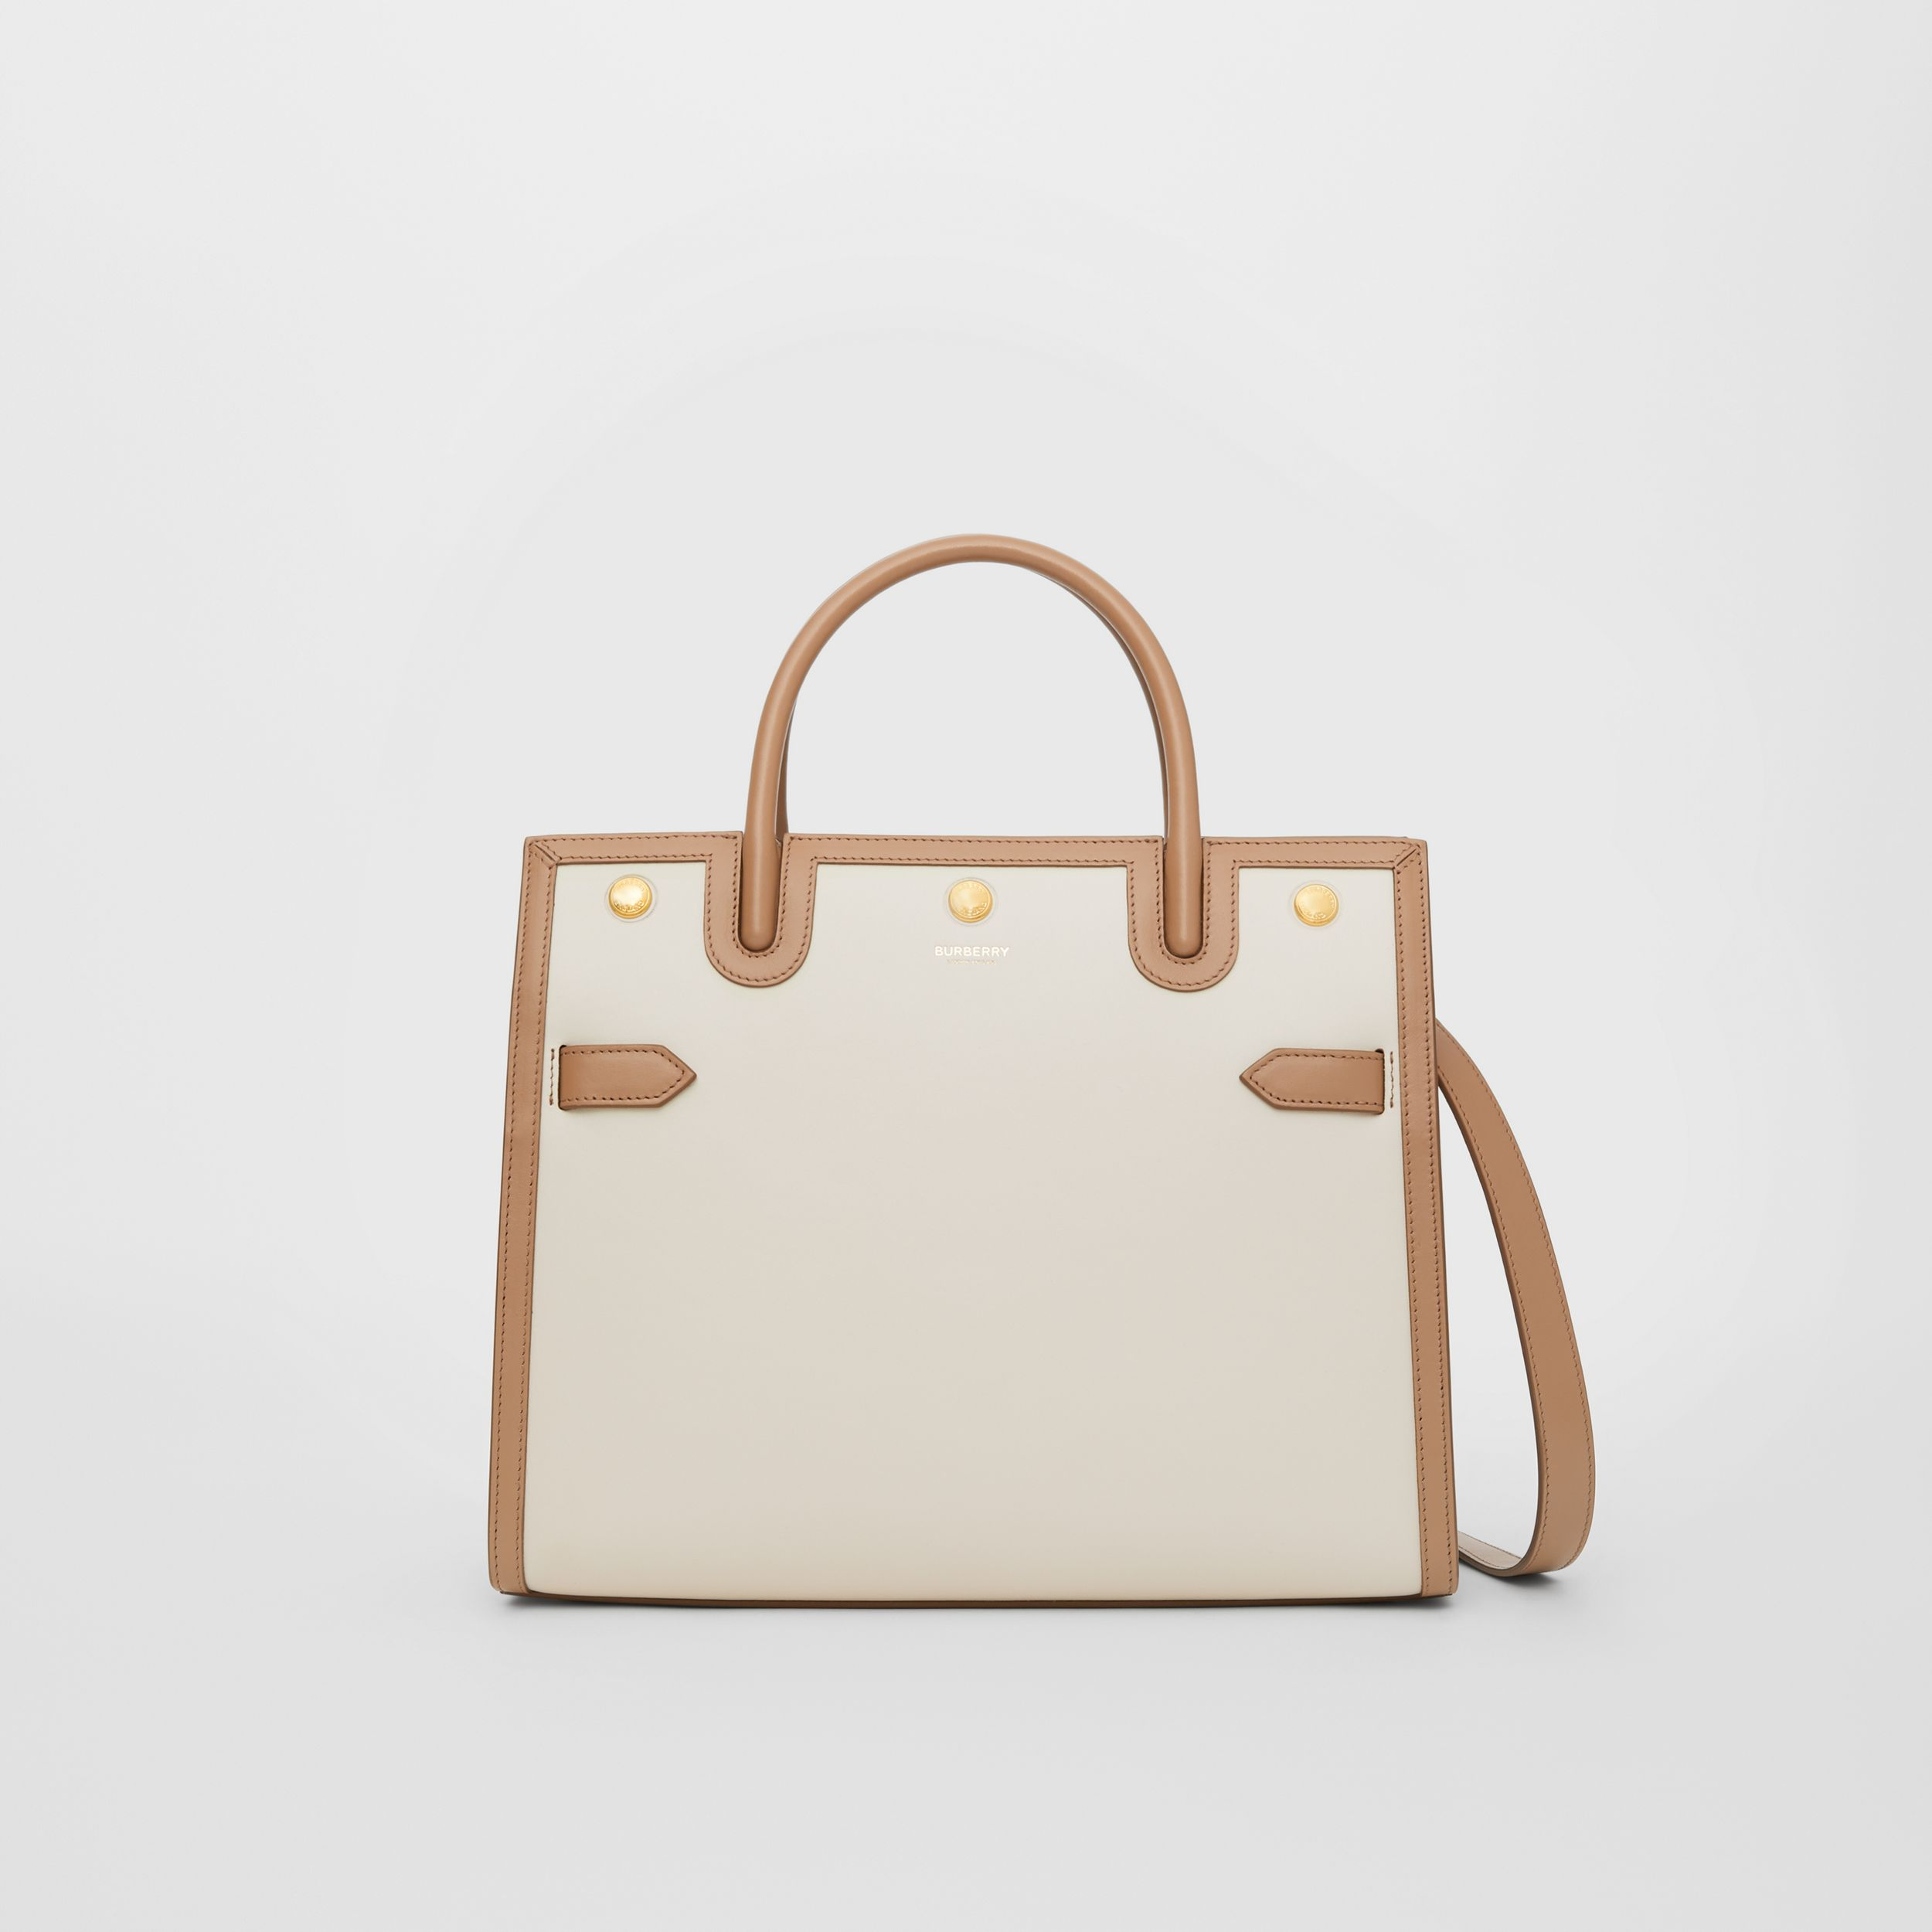 Small Leather Two-handle Title Bag in Buttermilk/camel - Women | Burberry - 1